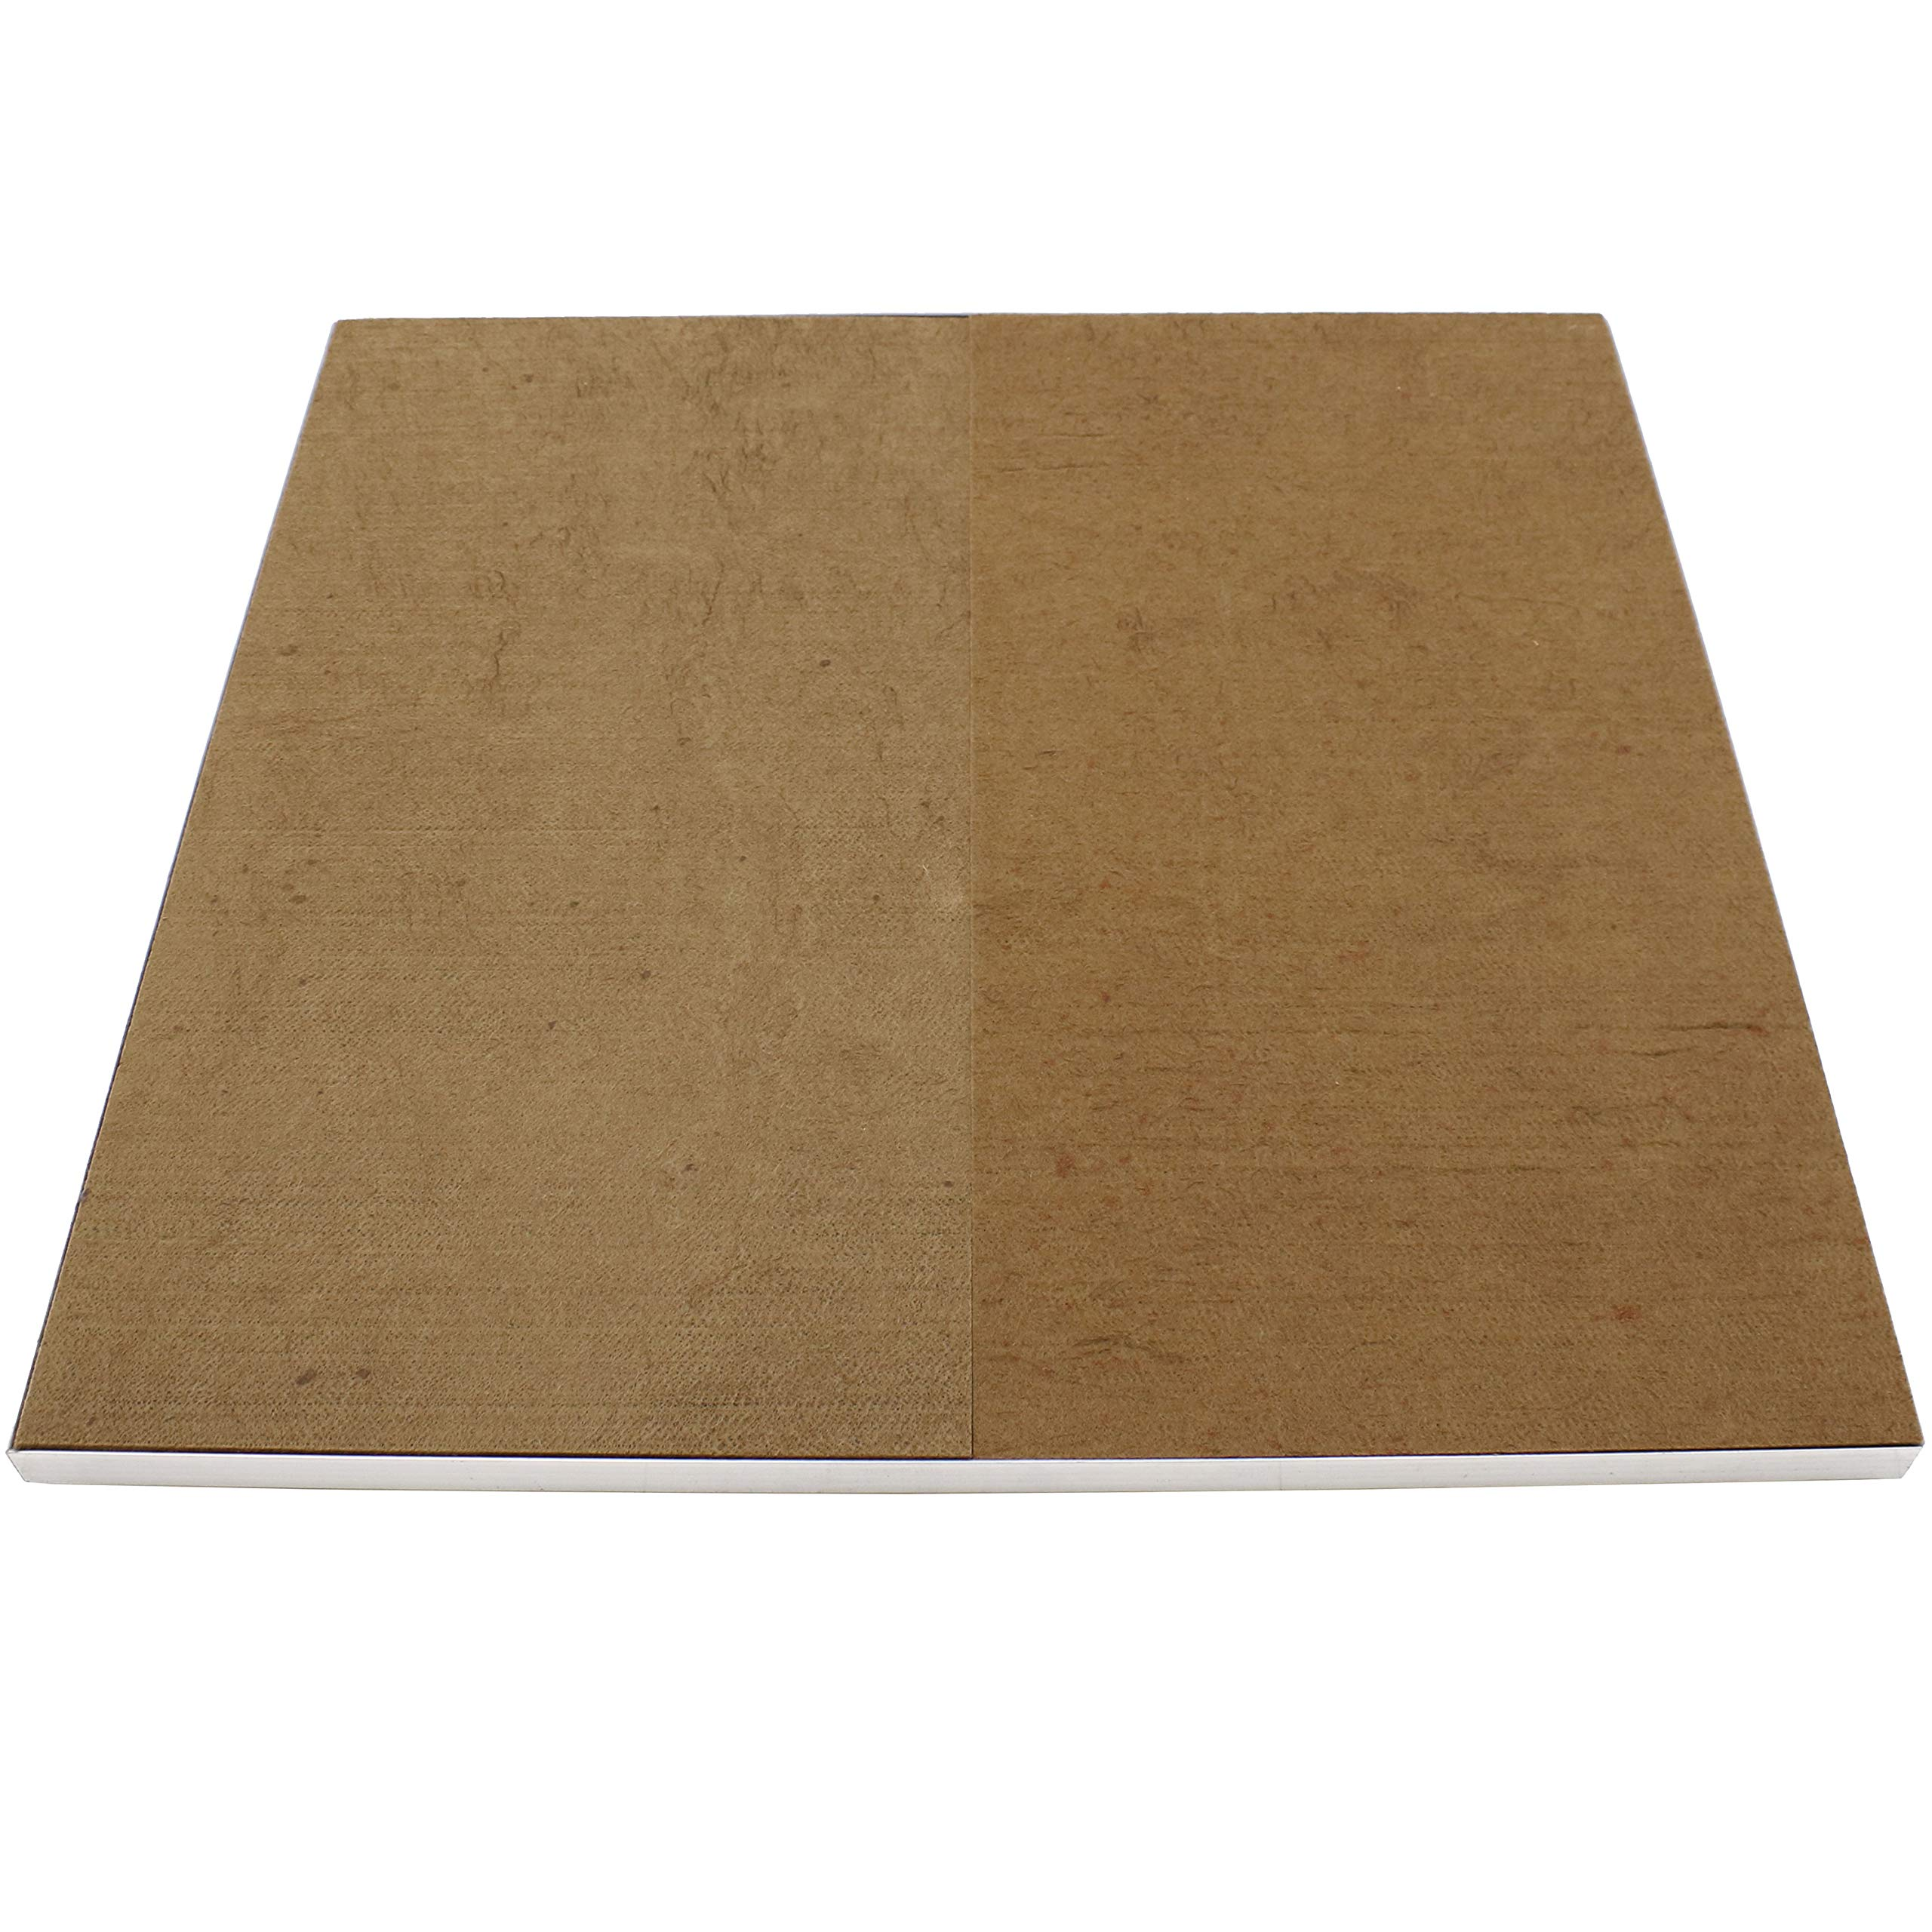 Deck Protect Fire Pit Pad Combo 36'' X 36'' by Infinite Heat Solutions